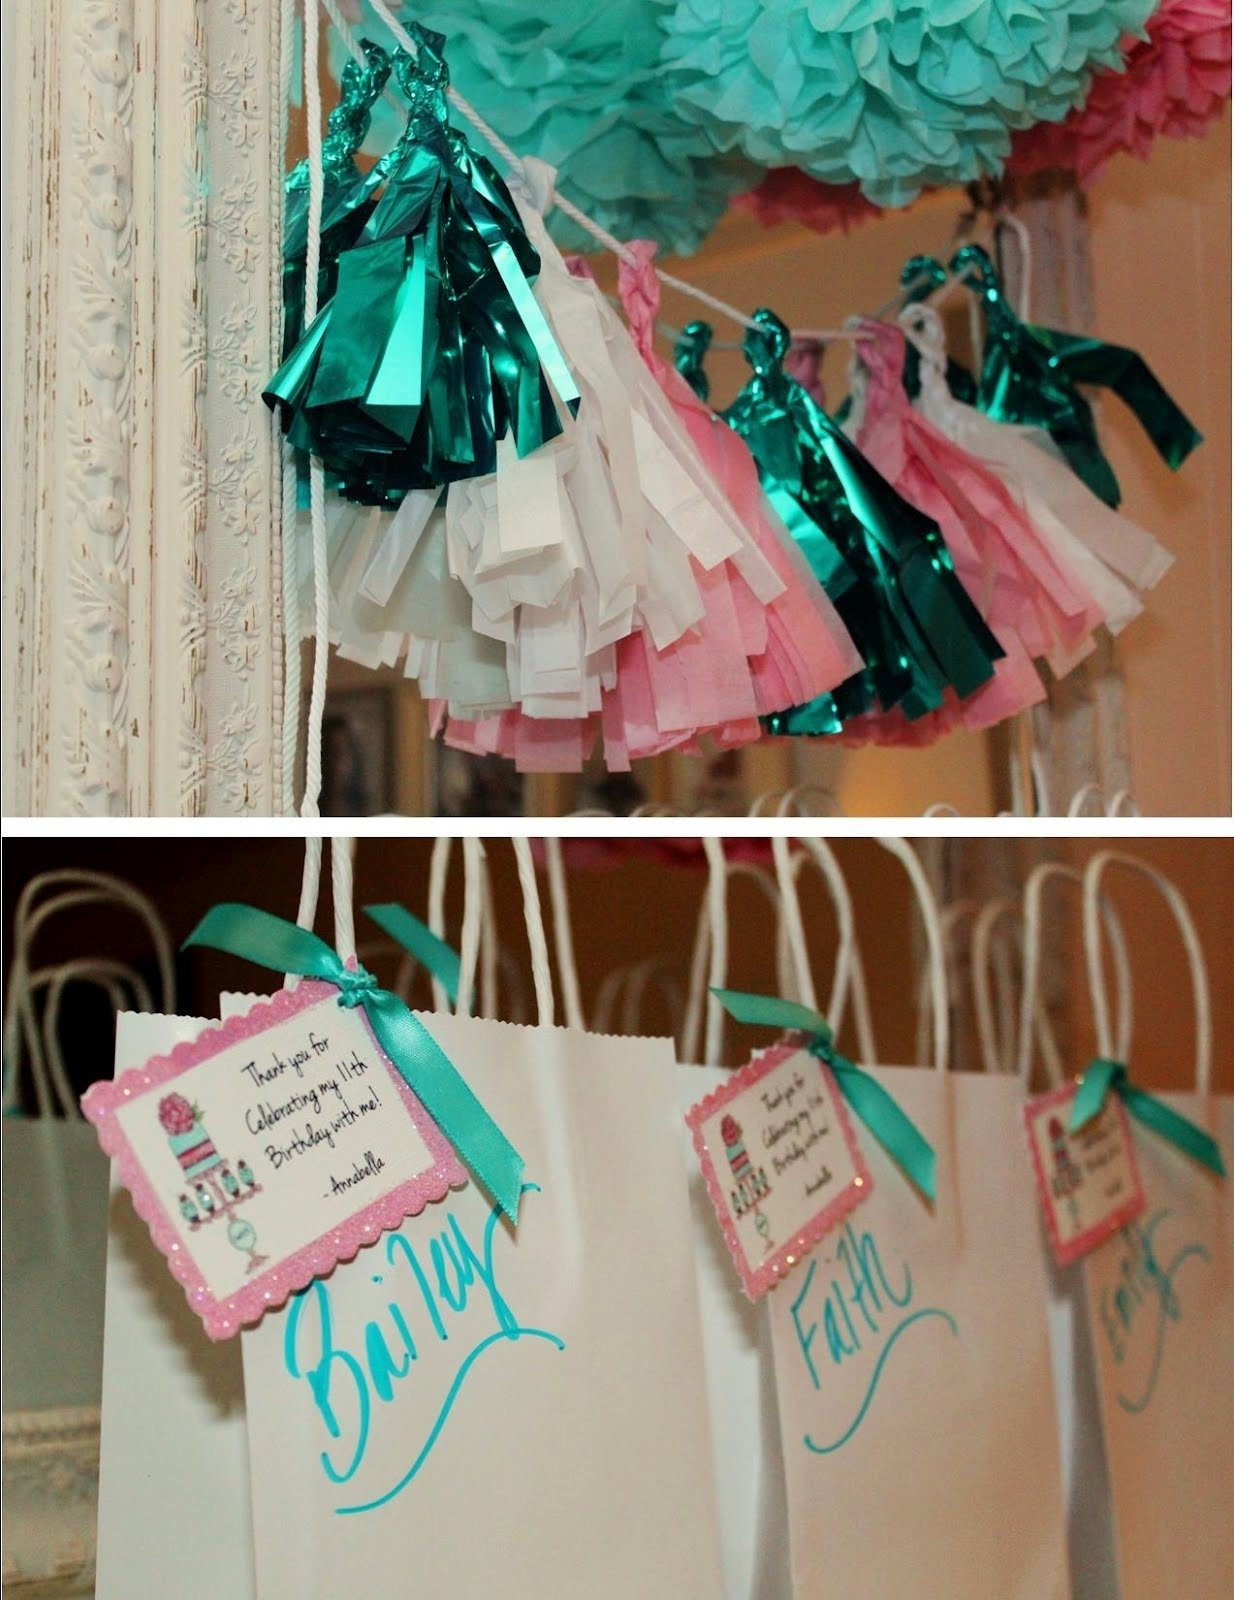 10 Awesome Slumber Party Ideas For 11 Year Olds icing designs sweet sleepover 11th birthday party 6 2020